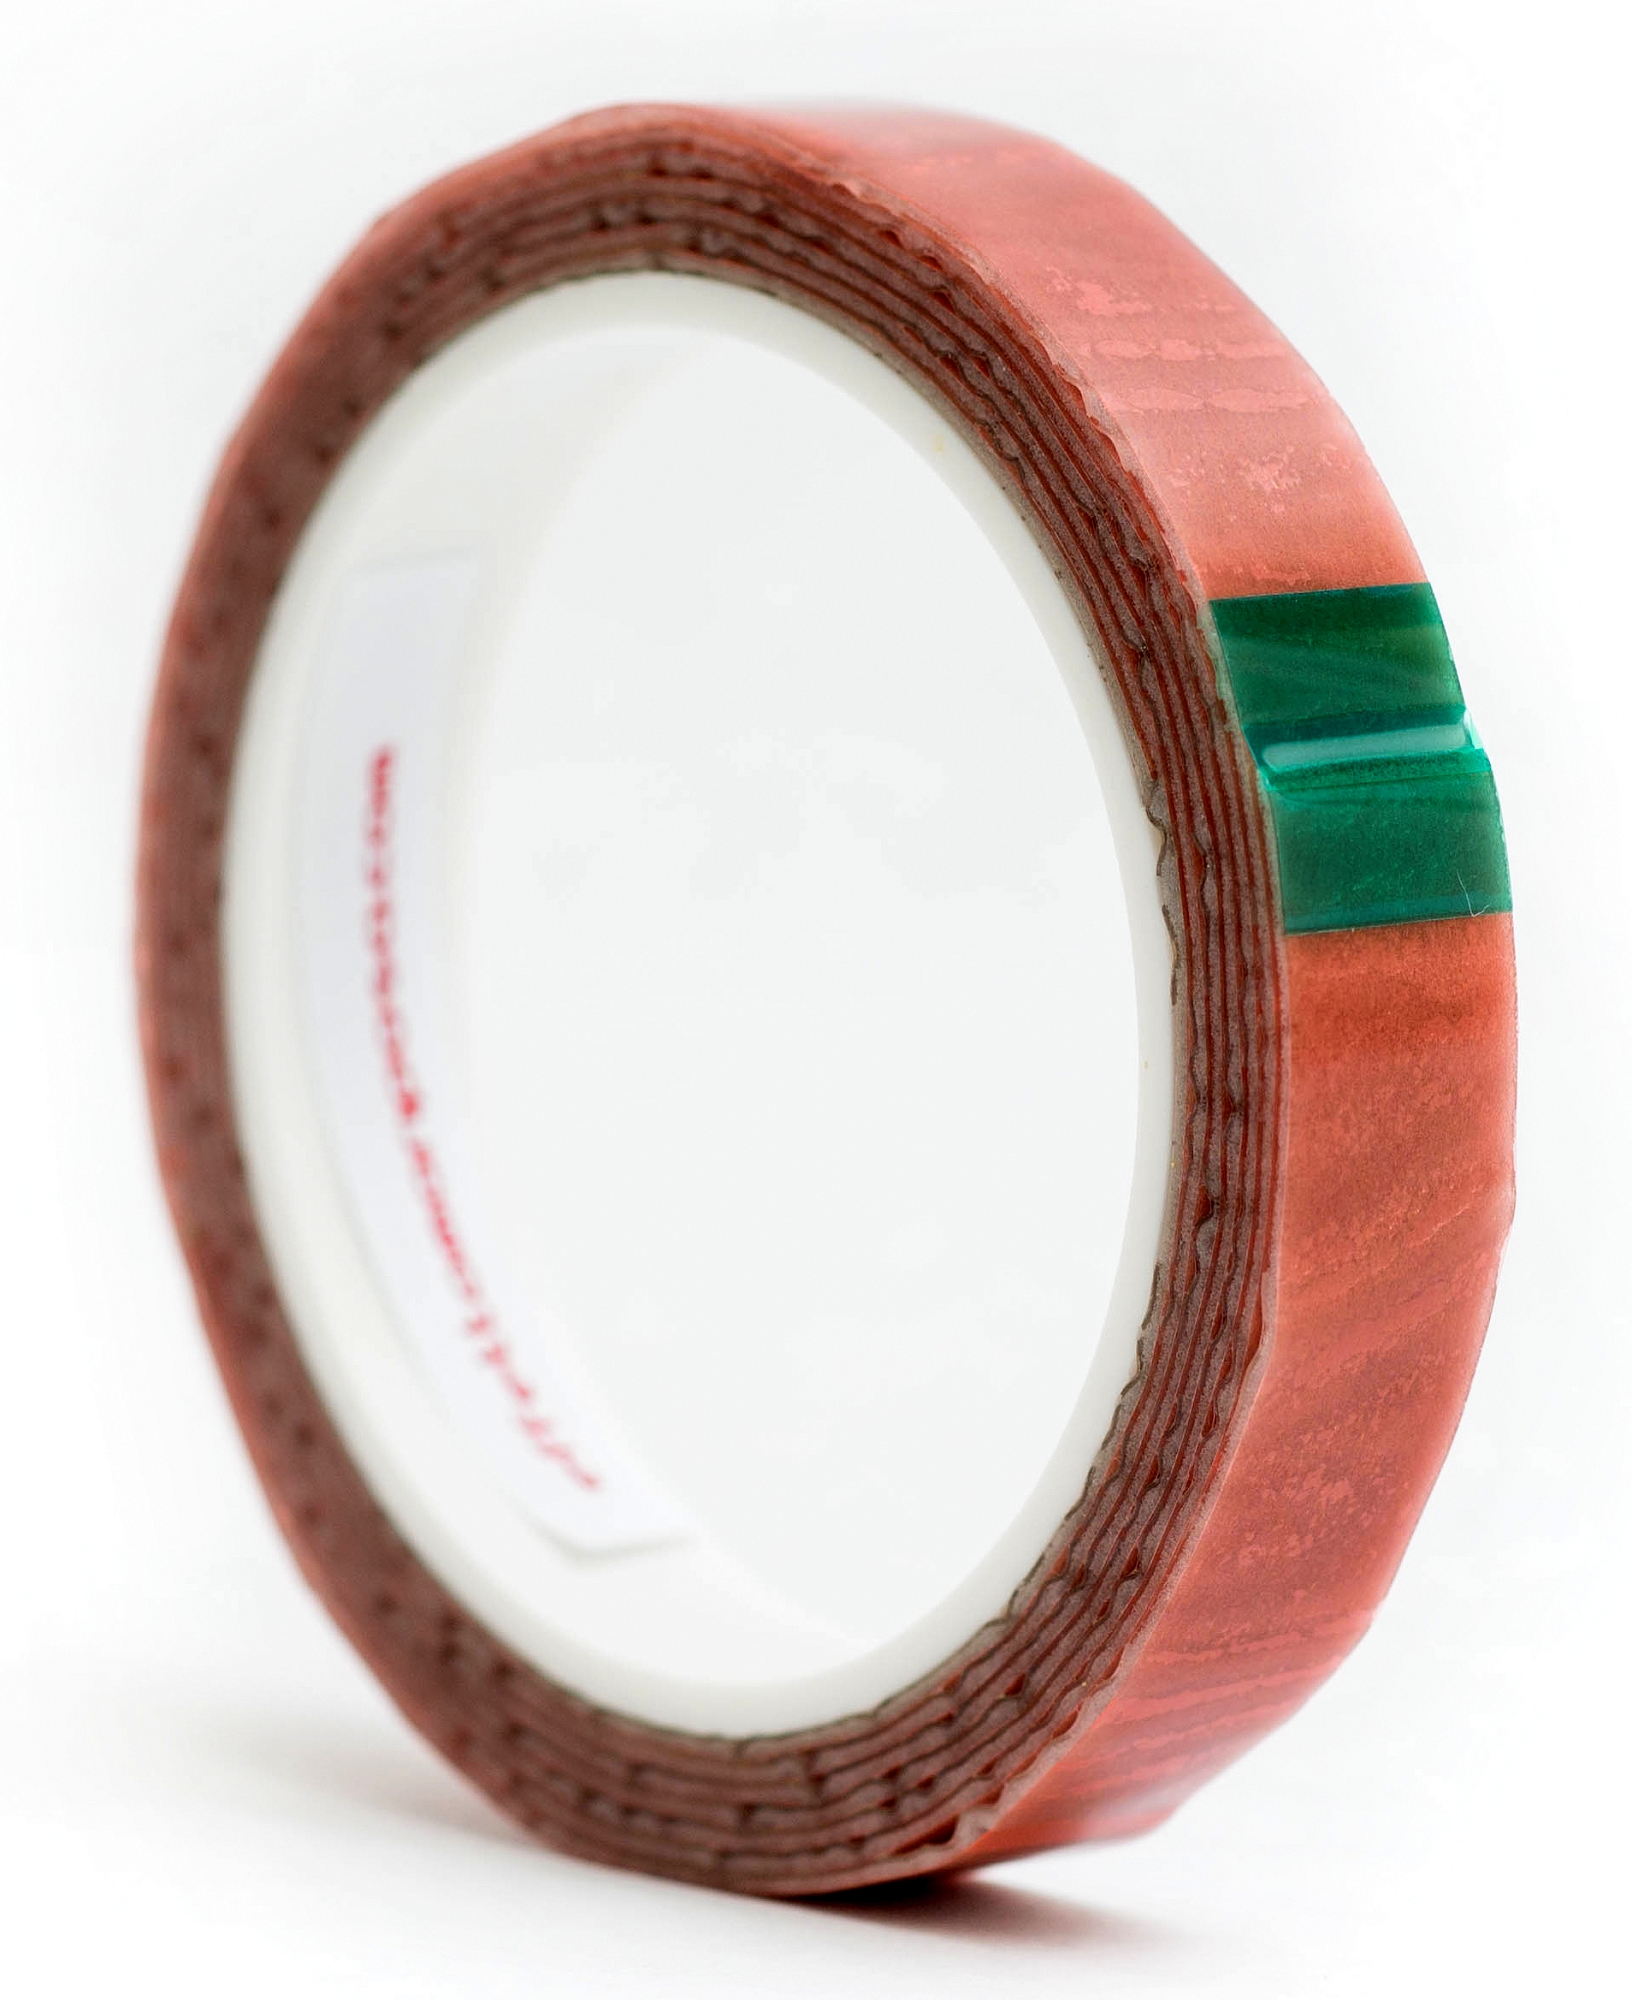 Carogna Tubular Gluing Tape (Narrow) 16.5 mm x 2m